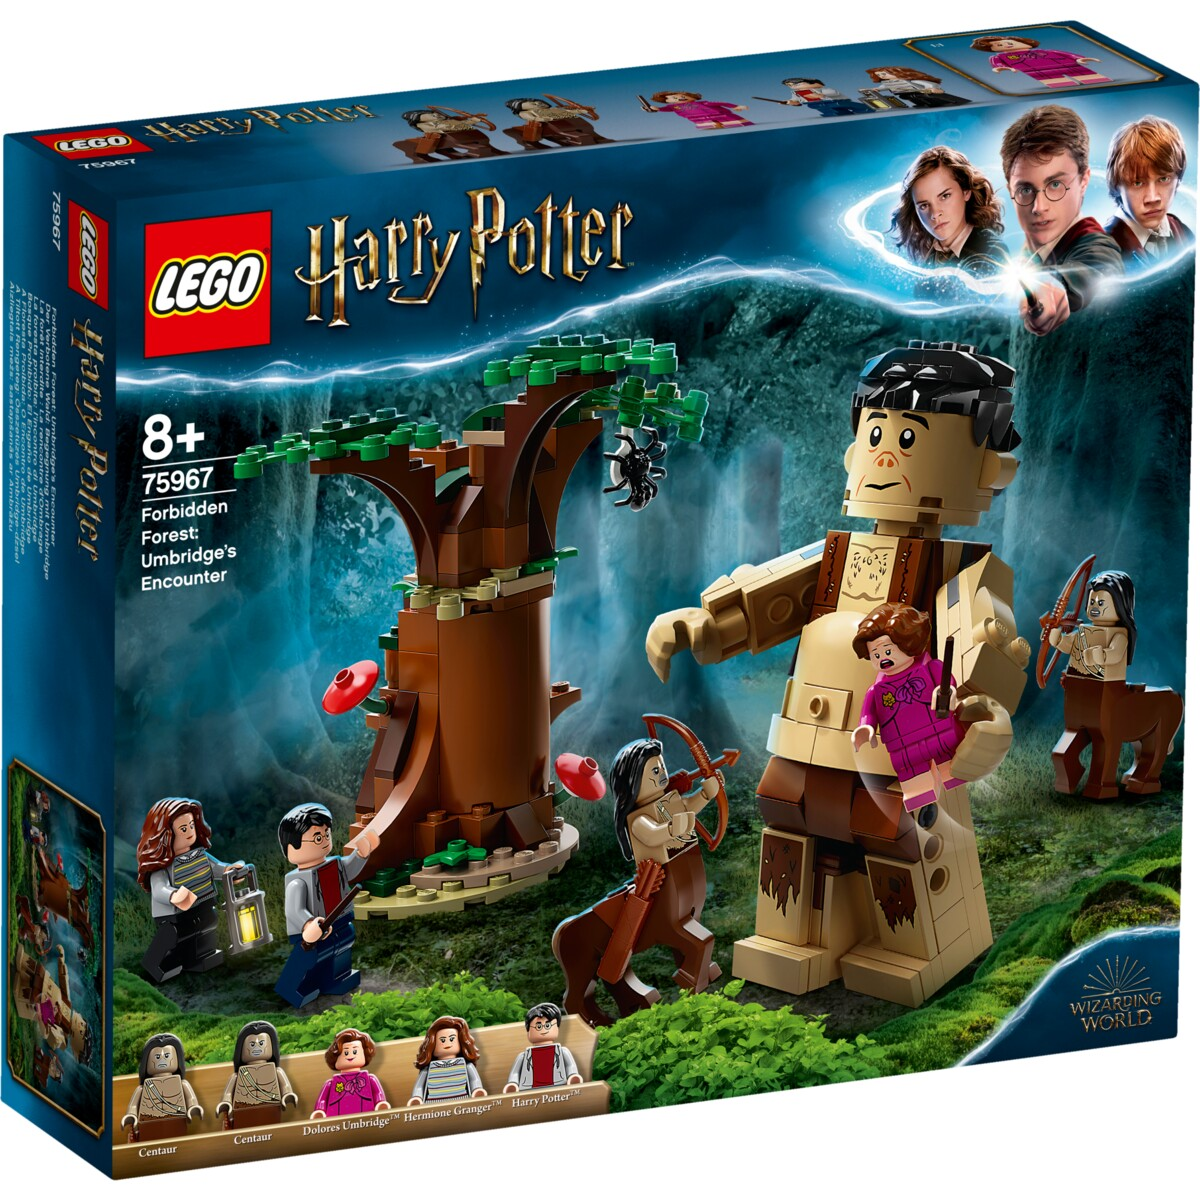 LEGO 75967 FORBIDDEN FOREST: UMBRIDGES ENCOUNTER